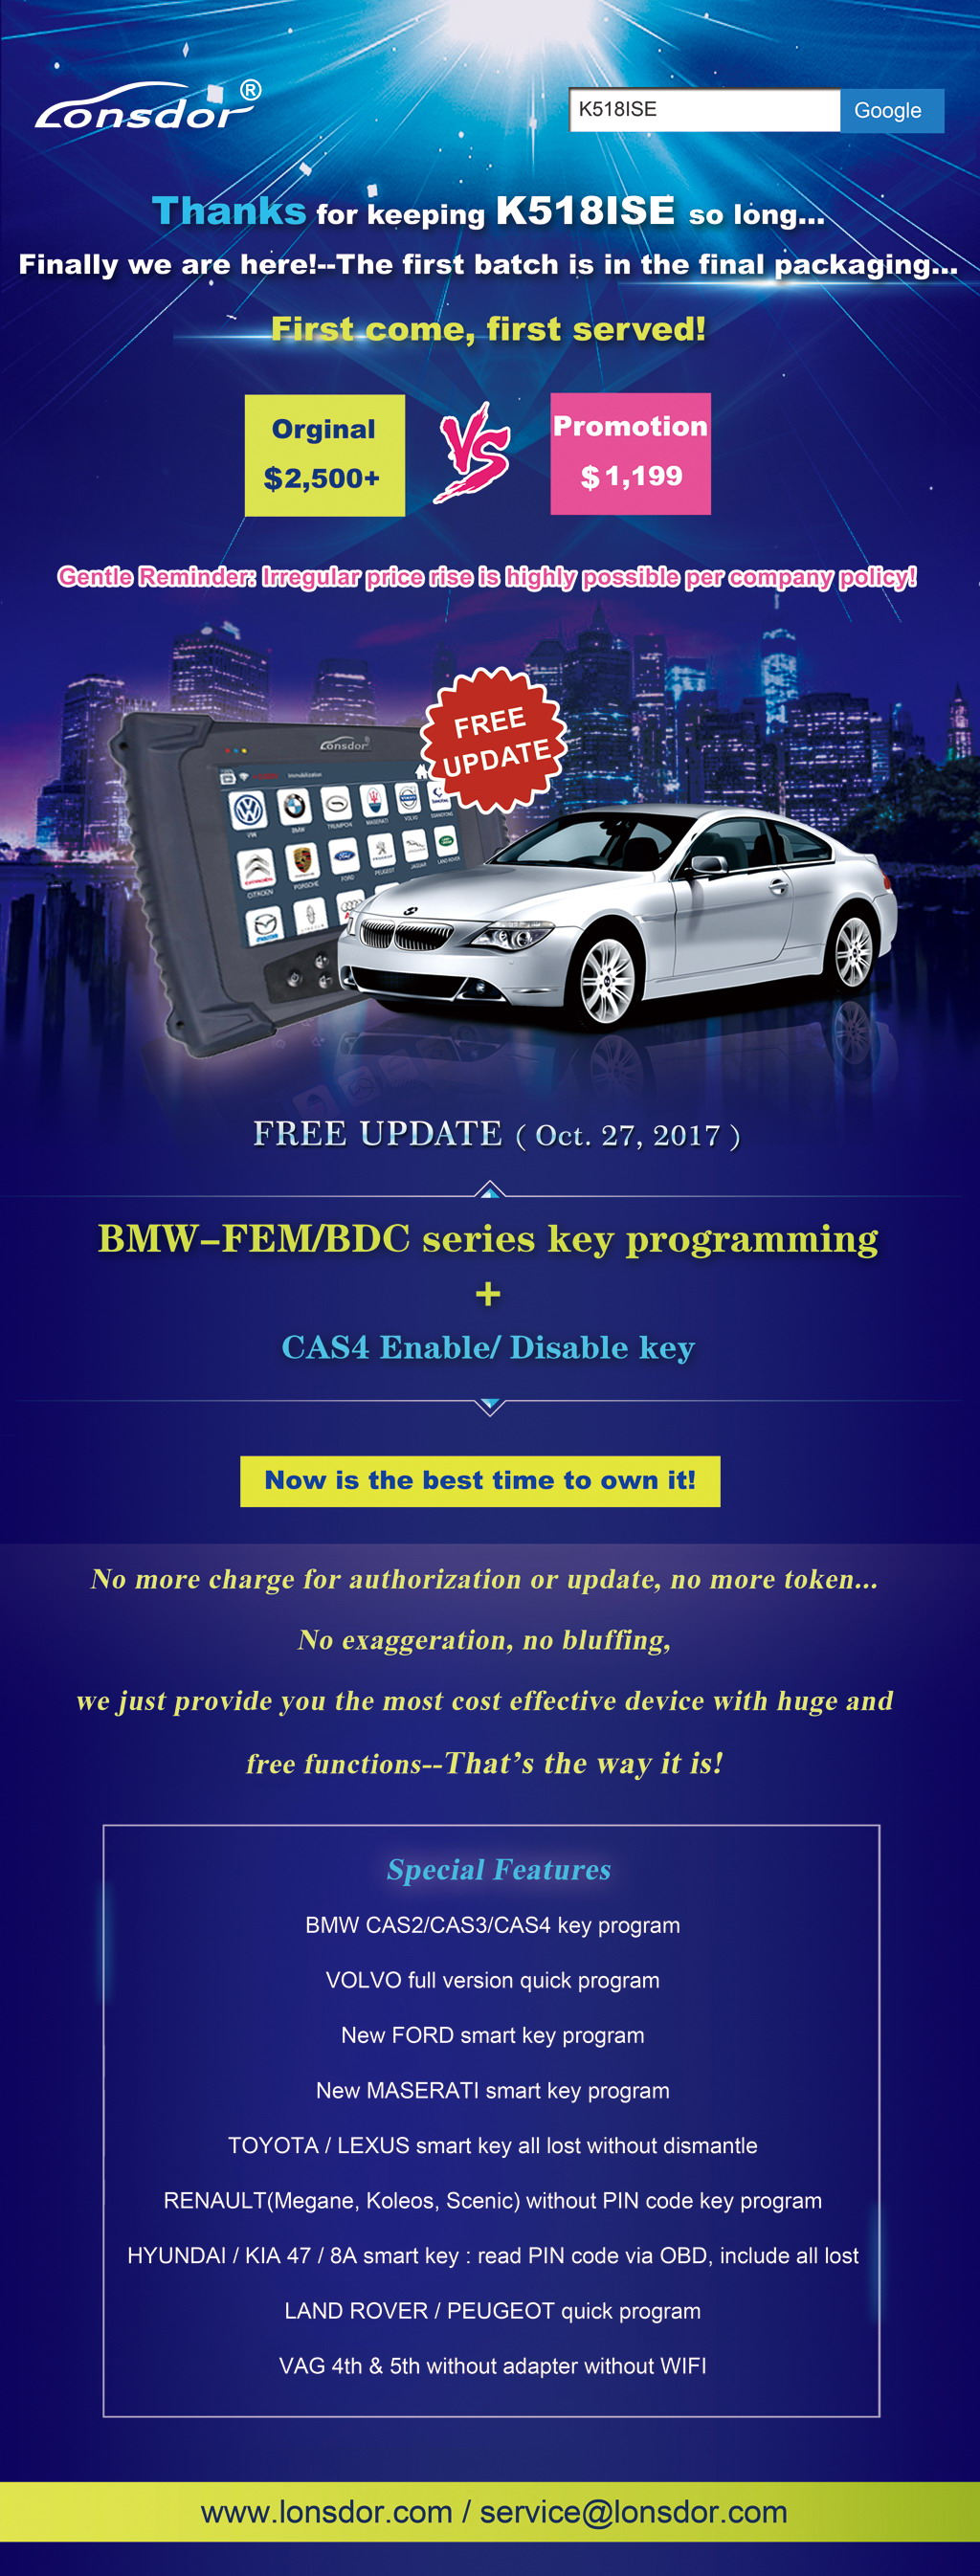 K518ISE is ready-BMW-free update